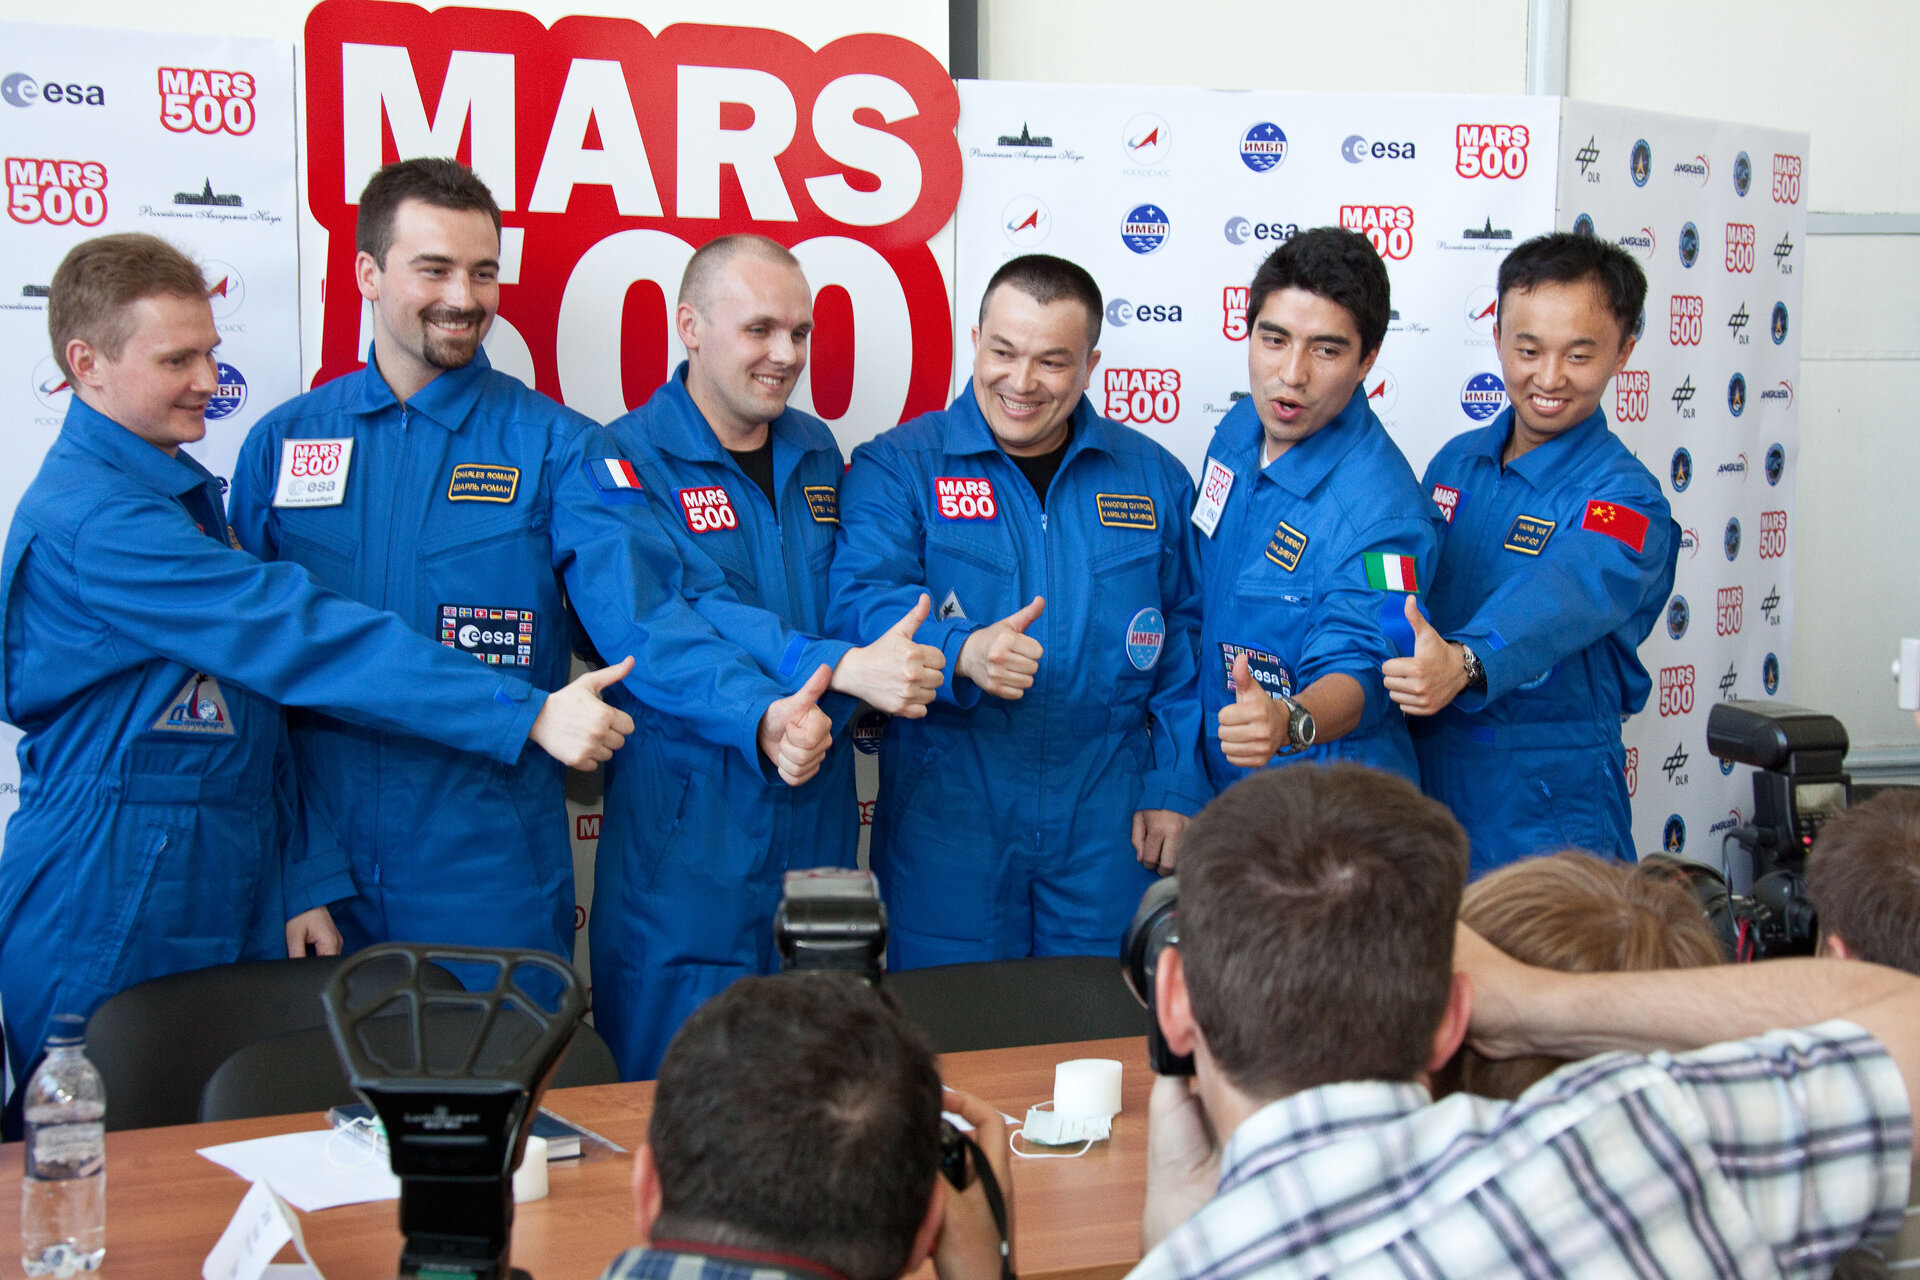 Crew of the Mars500 experiment